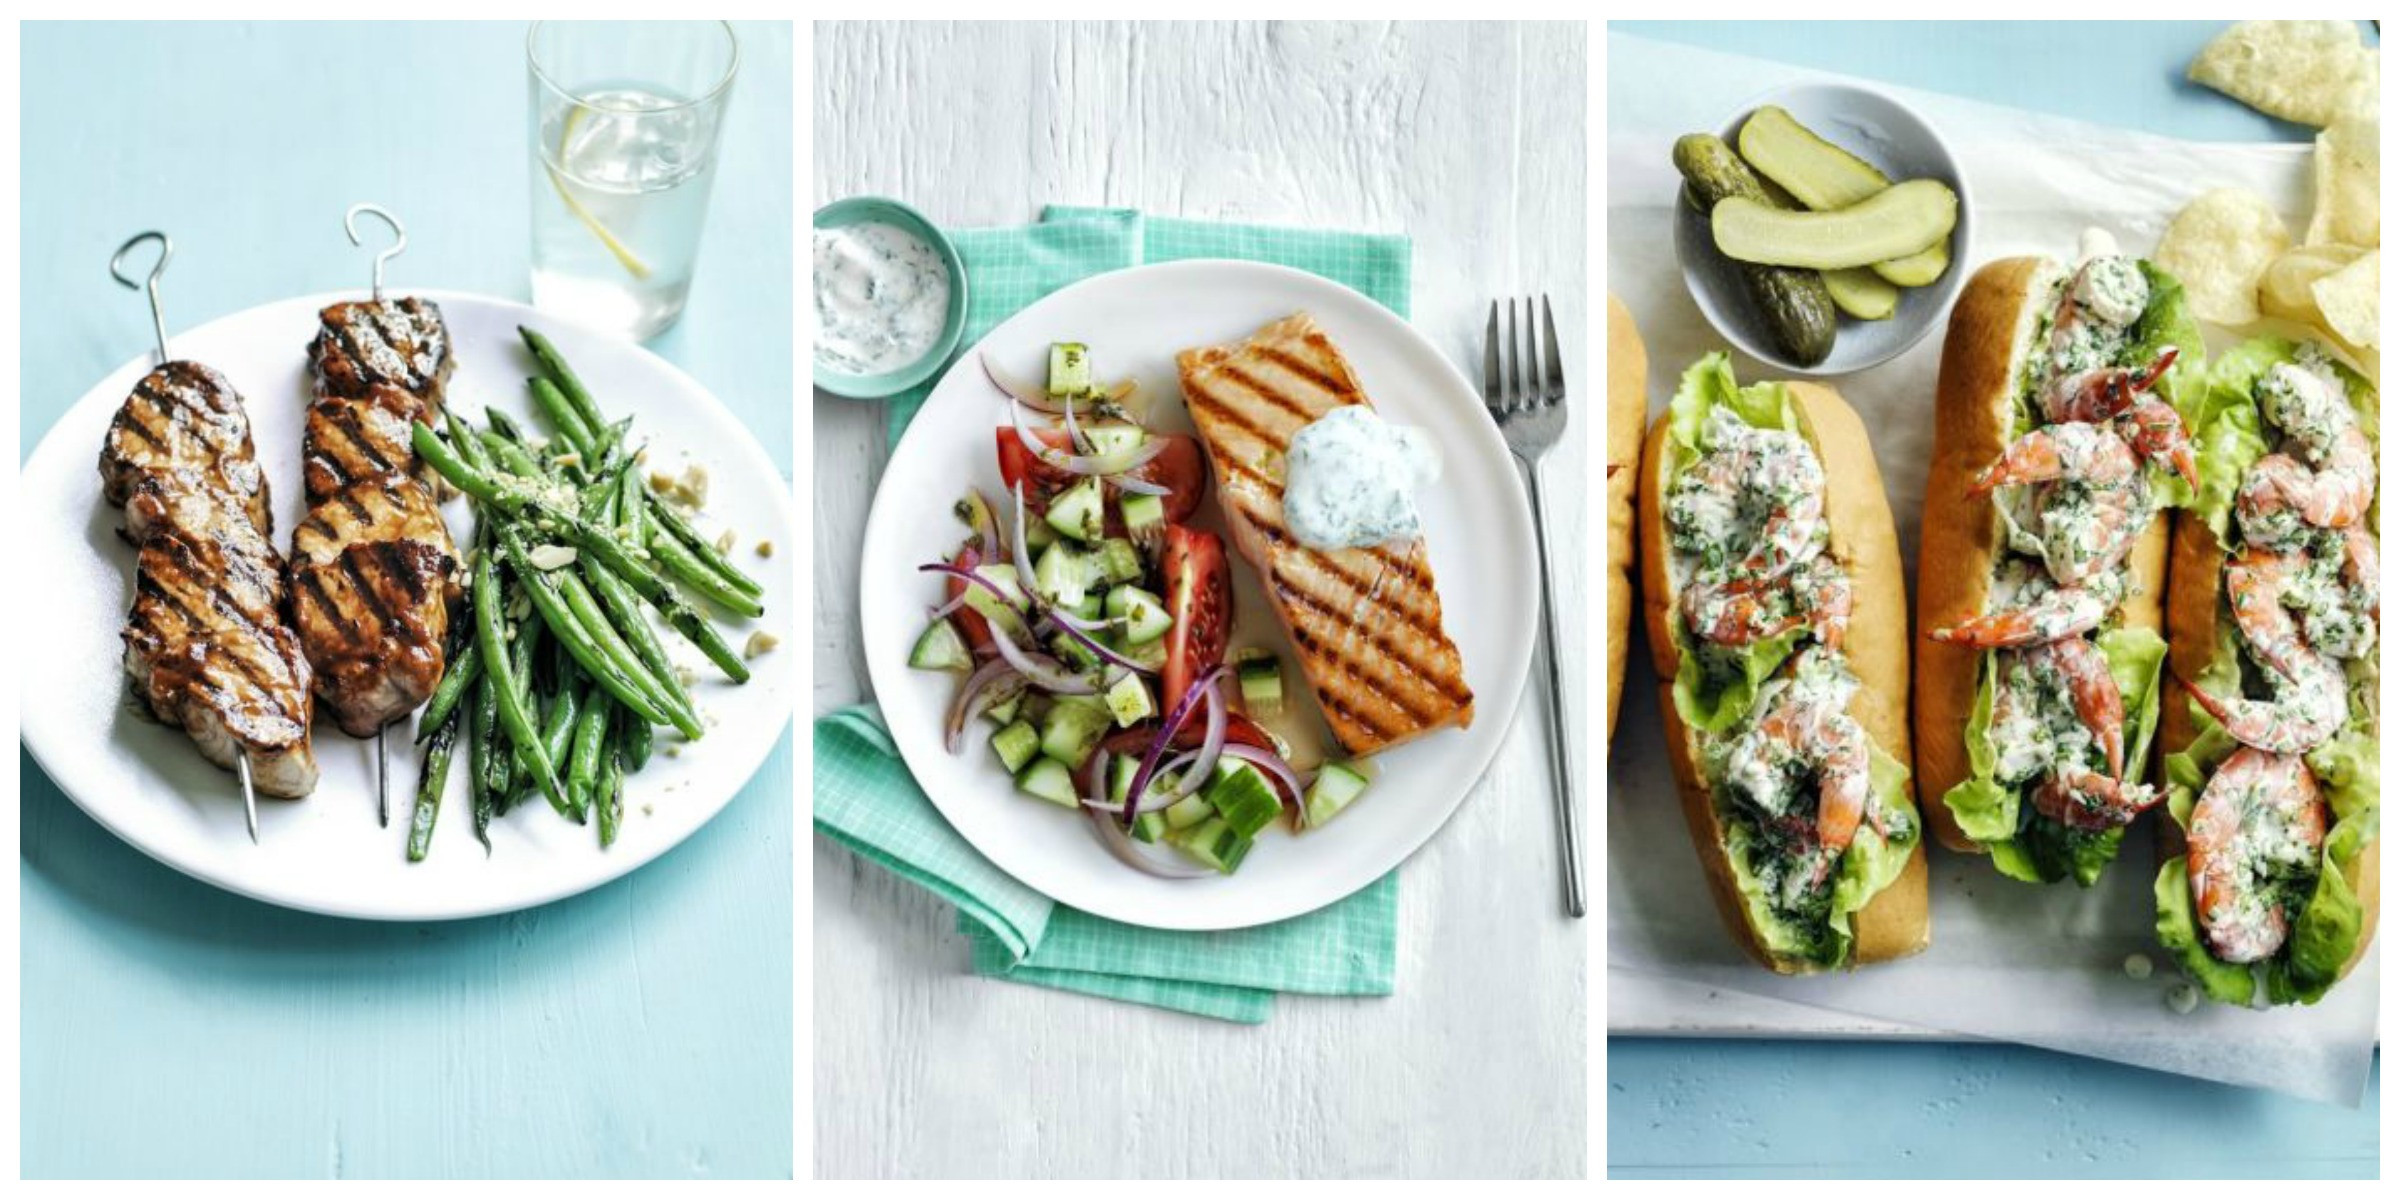 Healthy Light Dinners  20 Healthy Dinner Ideas Recipes for Light Meals